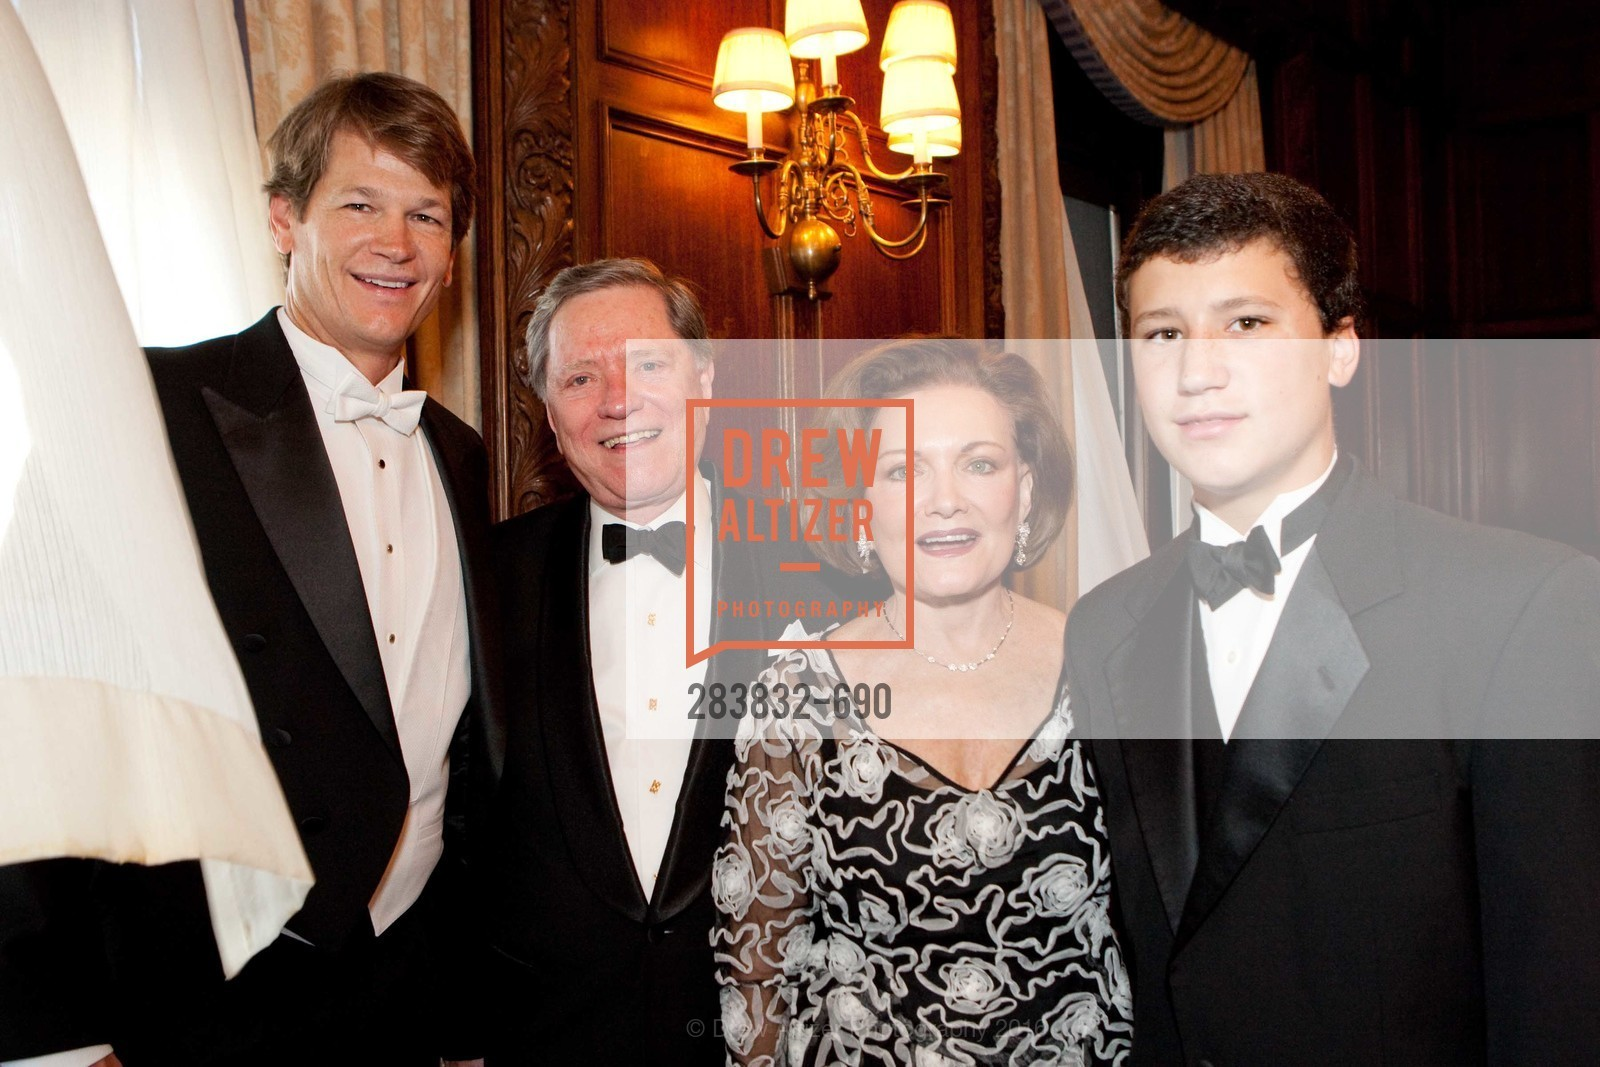 Jim Milligan, George McLaughlin, Olive Ann McLaughlin, James Milligan, 2009 Debutante Ball, Unknown, July 4th, 2008,Drew Altizer, Drew Altizer Photography, full-service agency, private events, San Francisco photographer, photographer california